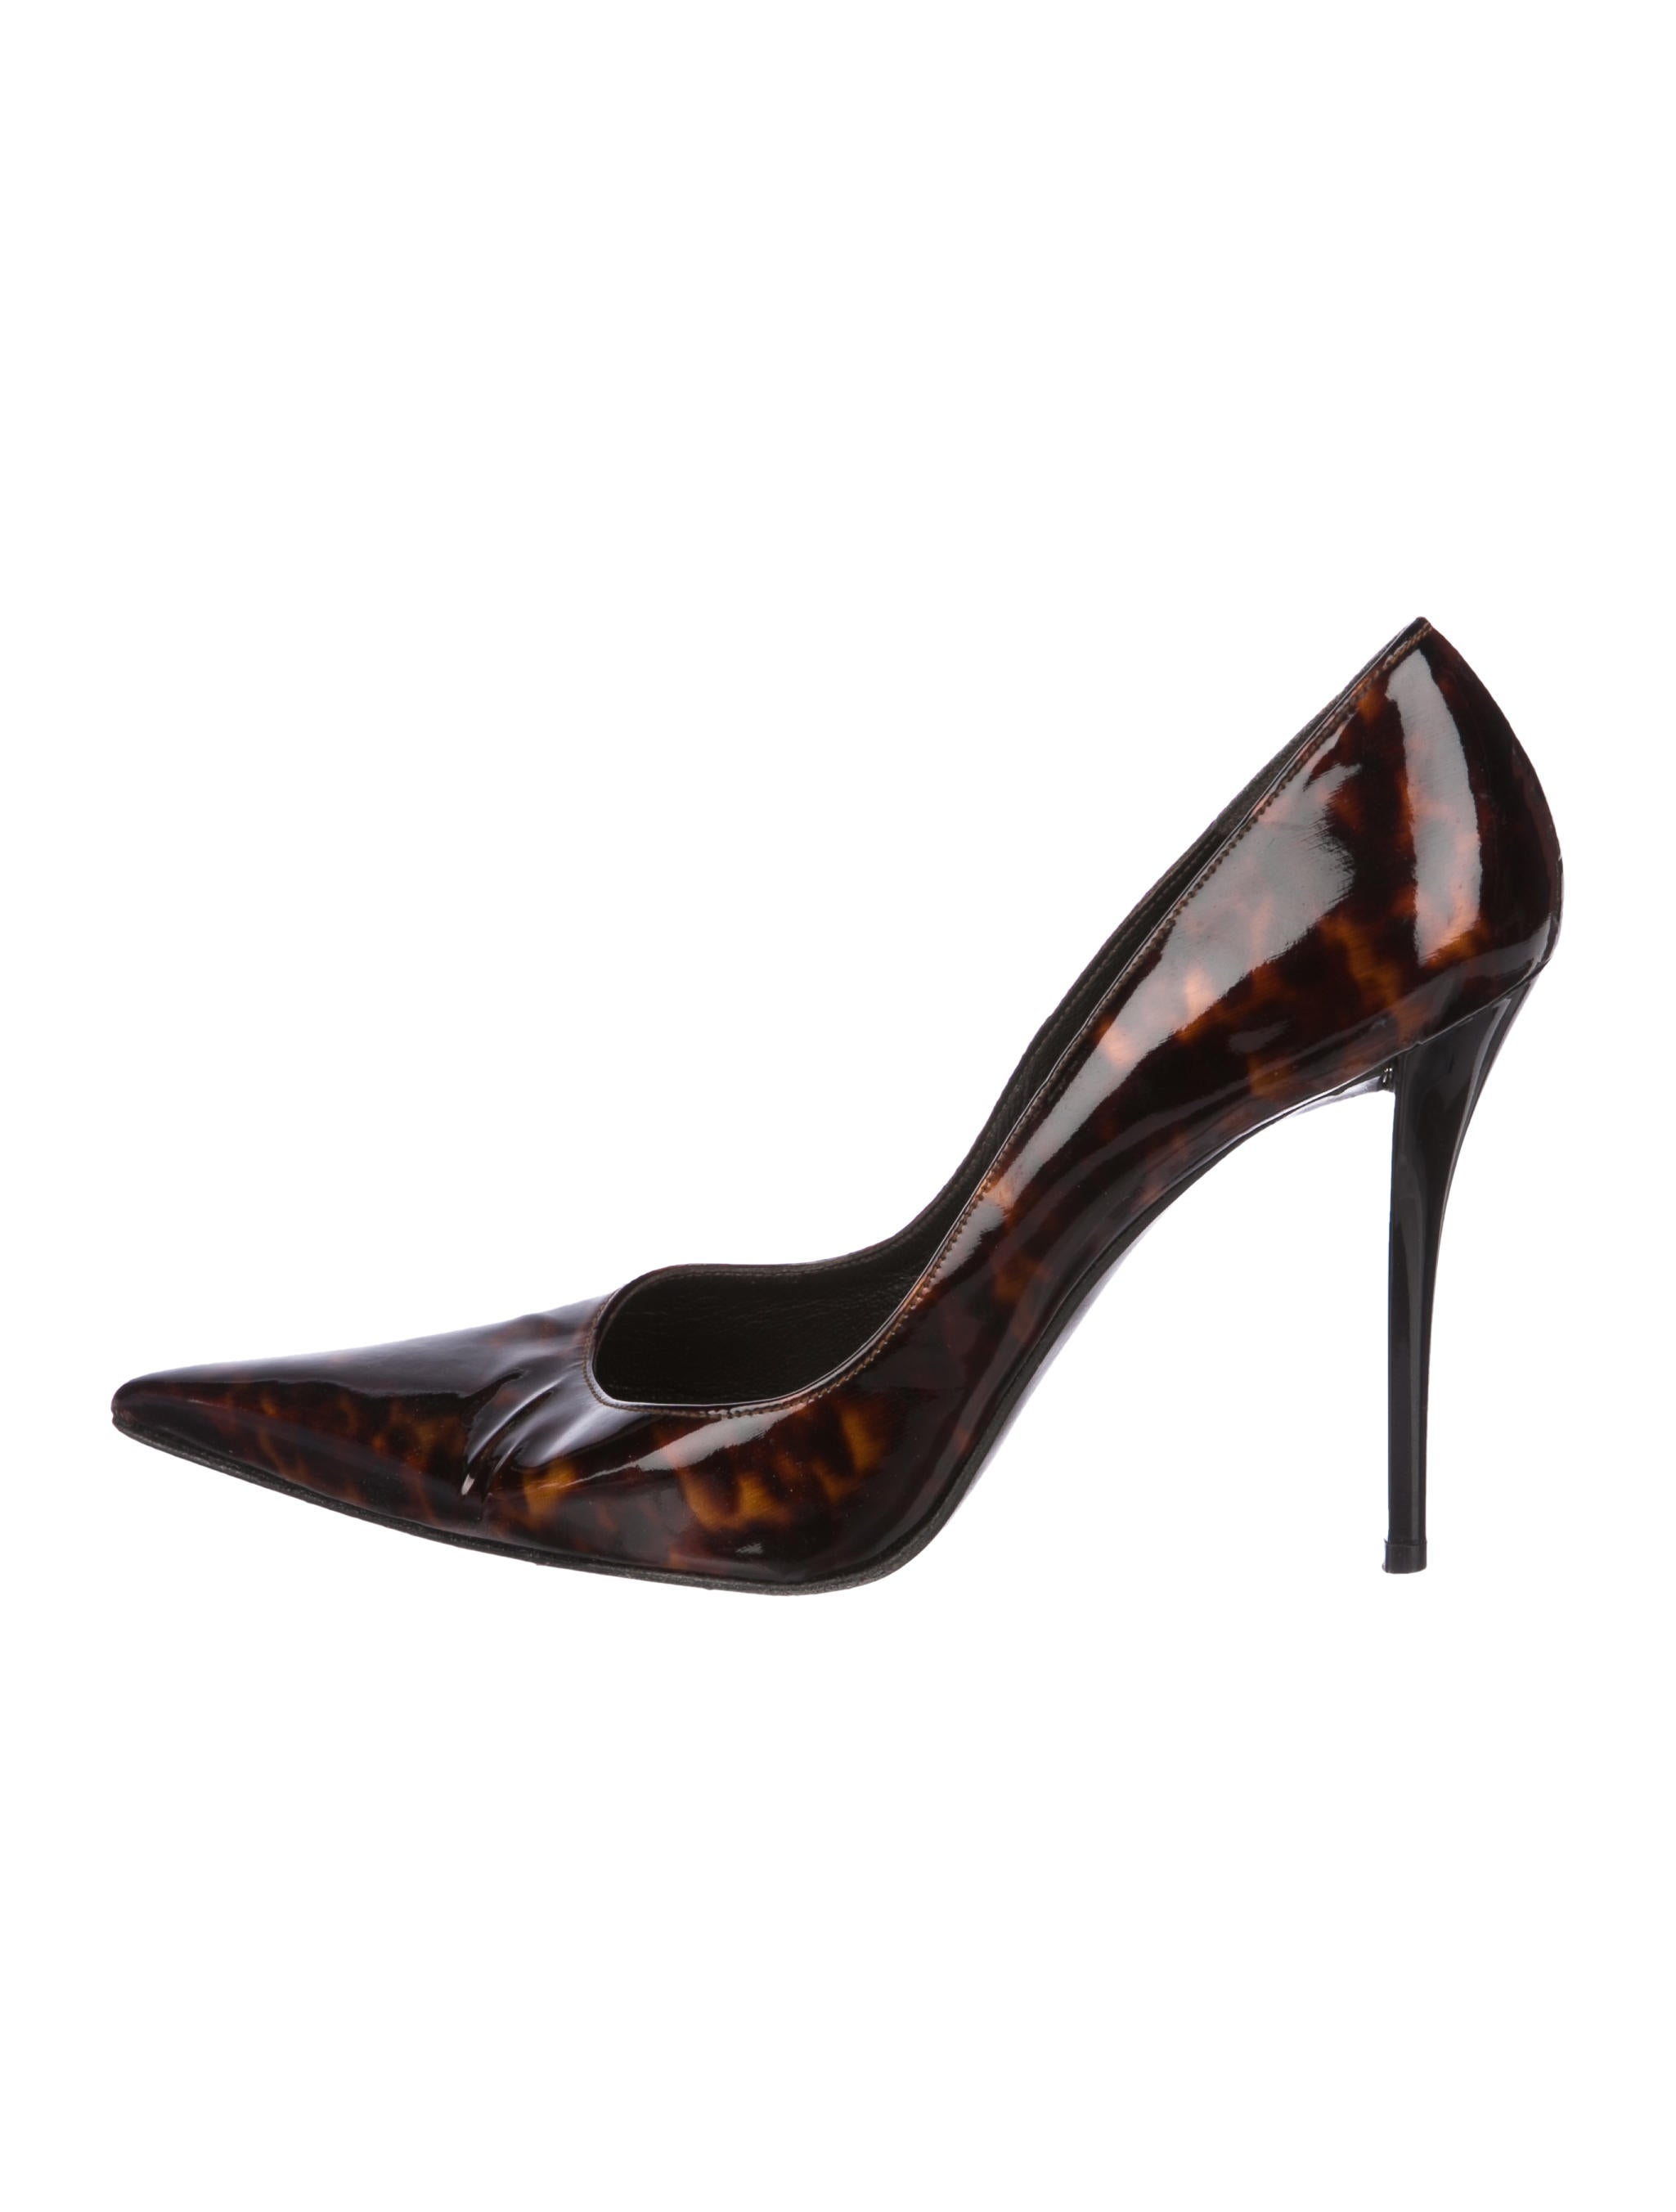 Stuart Weitzman Pointed-Toe Tortoiseshell Pumps